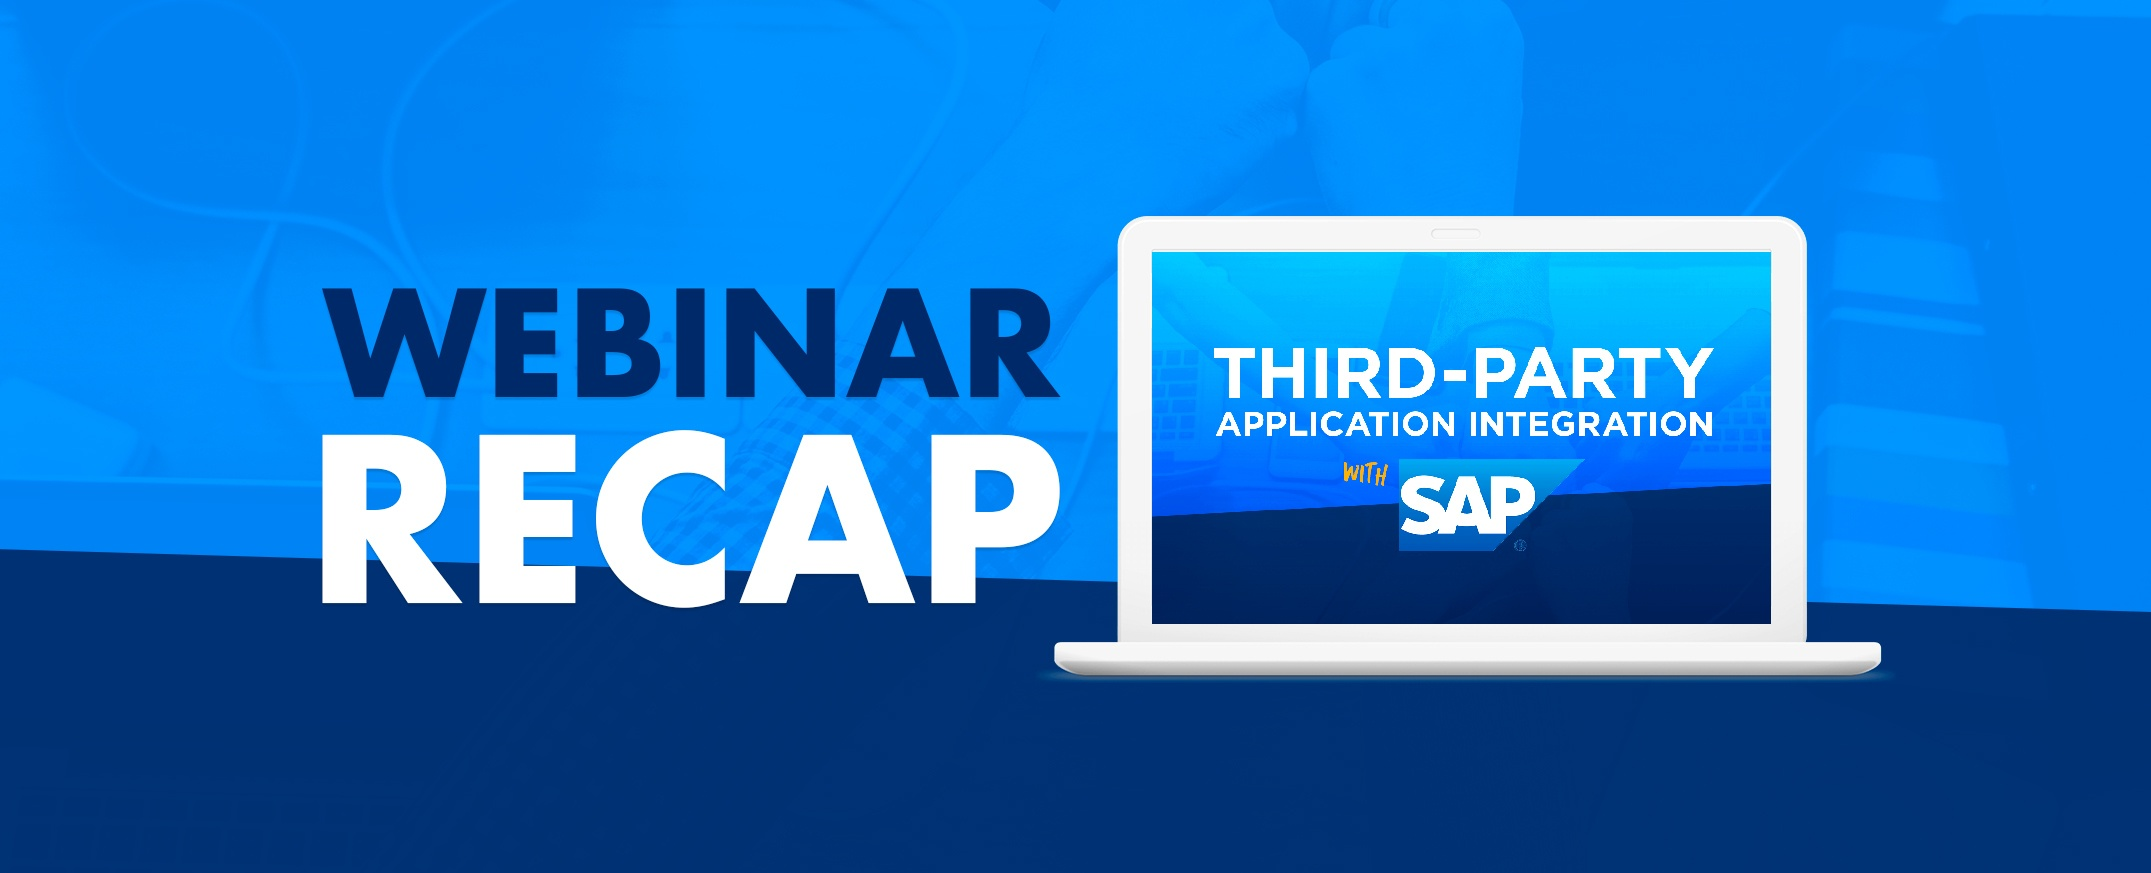 WEBINAR-RECAP-Third-party-application-integration-with-SAP